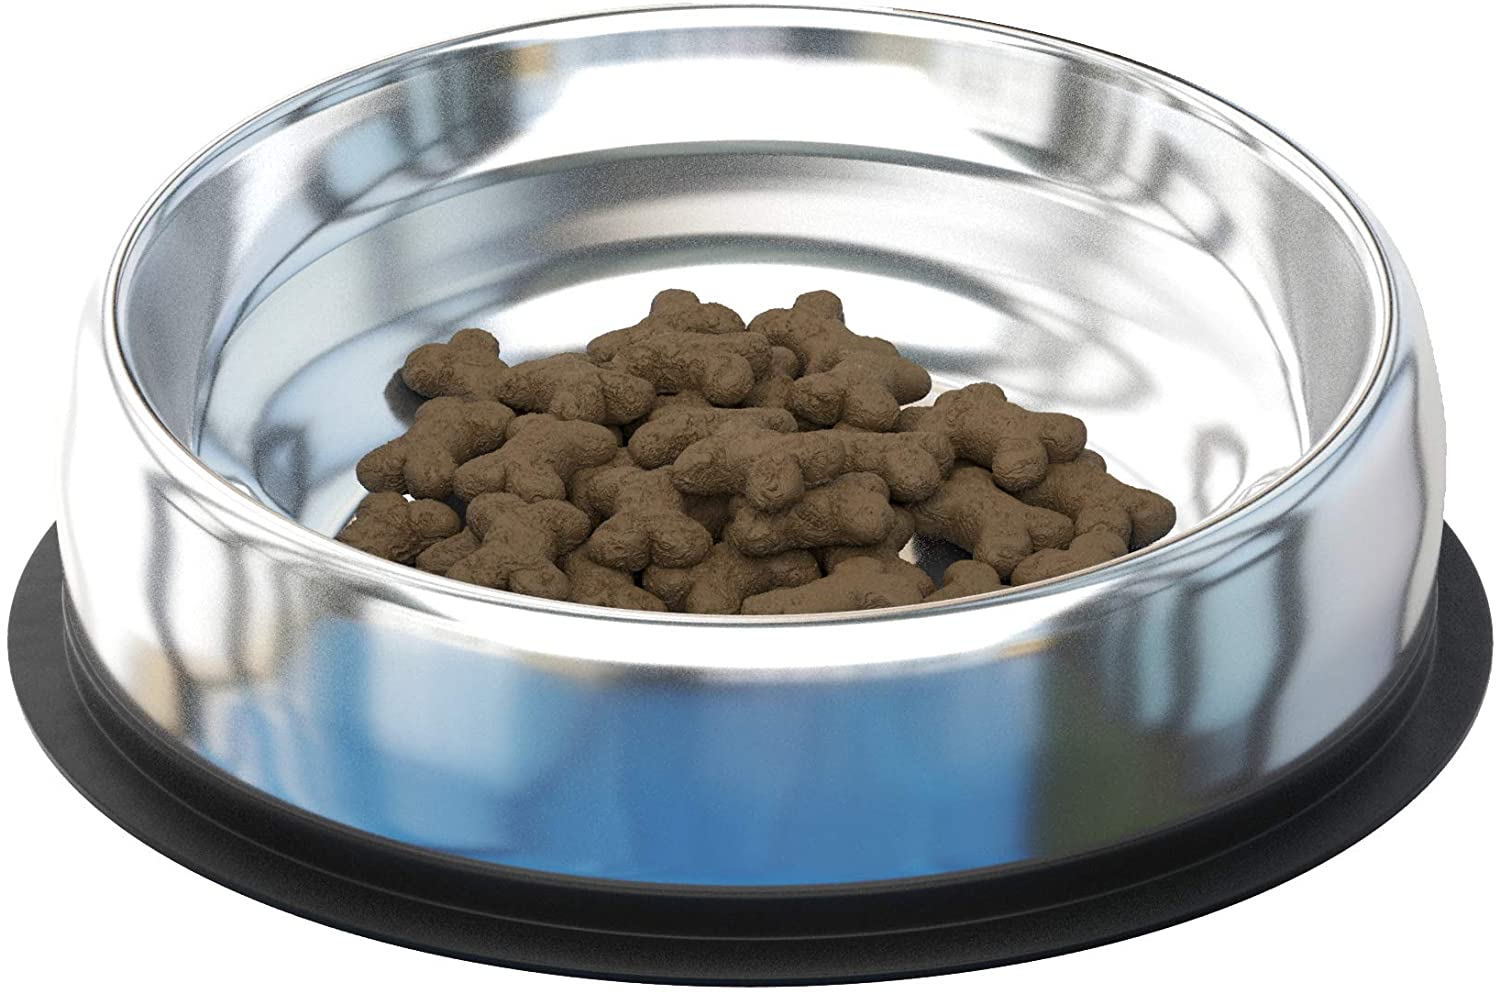 Enhanced Pet Bowl - Stainless Steel Bowl for Flat-Faced Dog & Cat Breeds. Vet Approved | Non-Slip Slanted/Tilted Pet Bowl with Special Ridge. No Mess. Bulldogs, Pugs, Boxer, Cats, and All Breeds